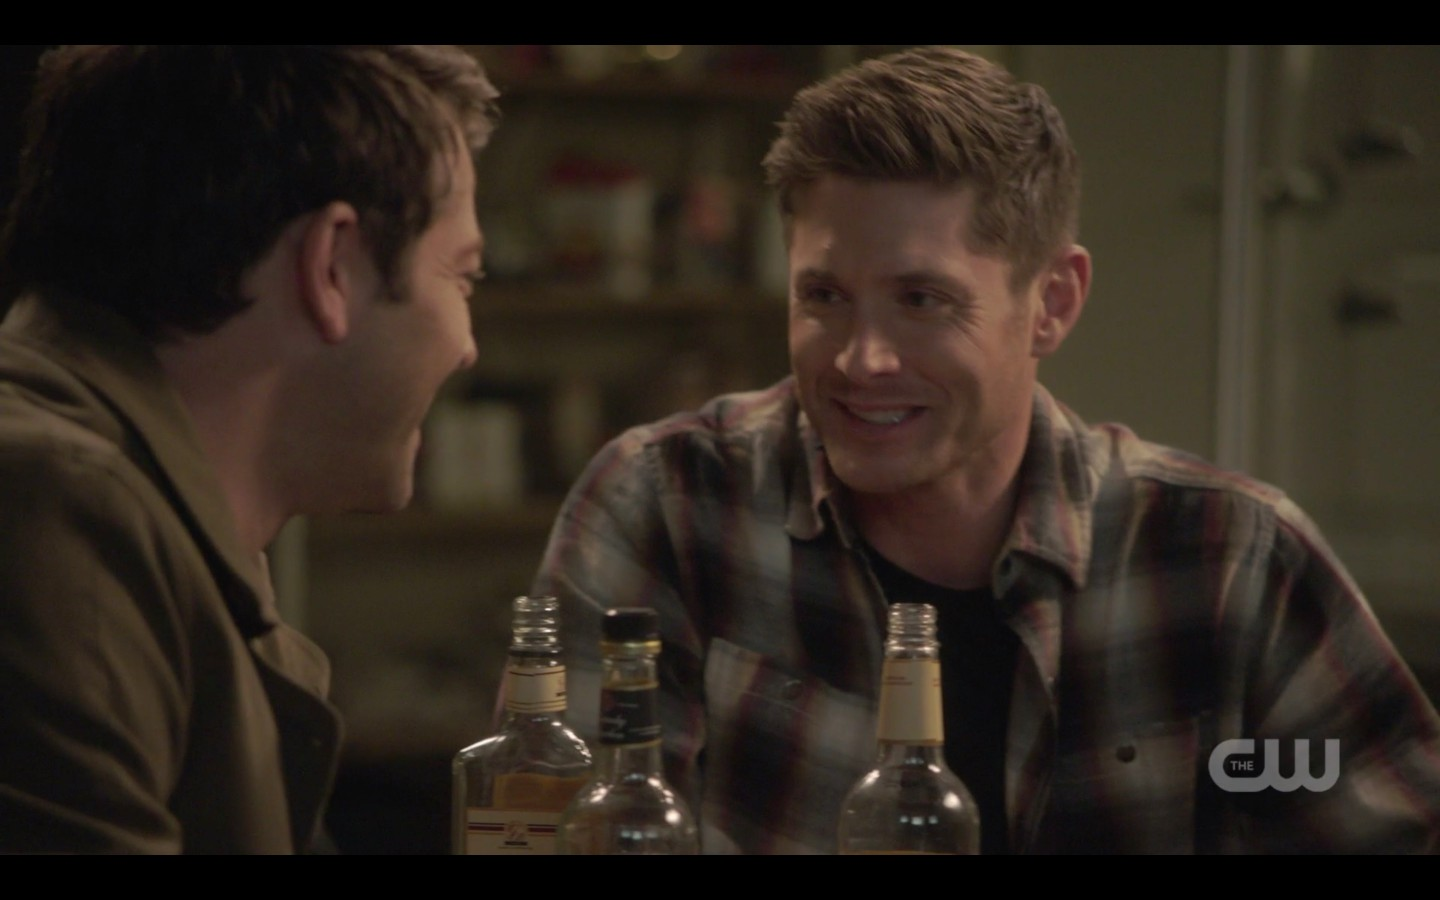 spn dean winchester castiel drinking laughing at jack memory